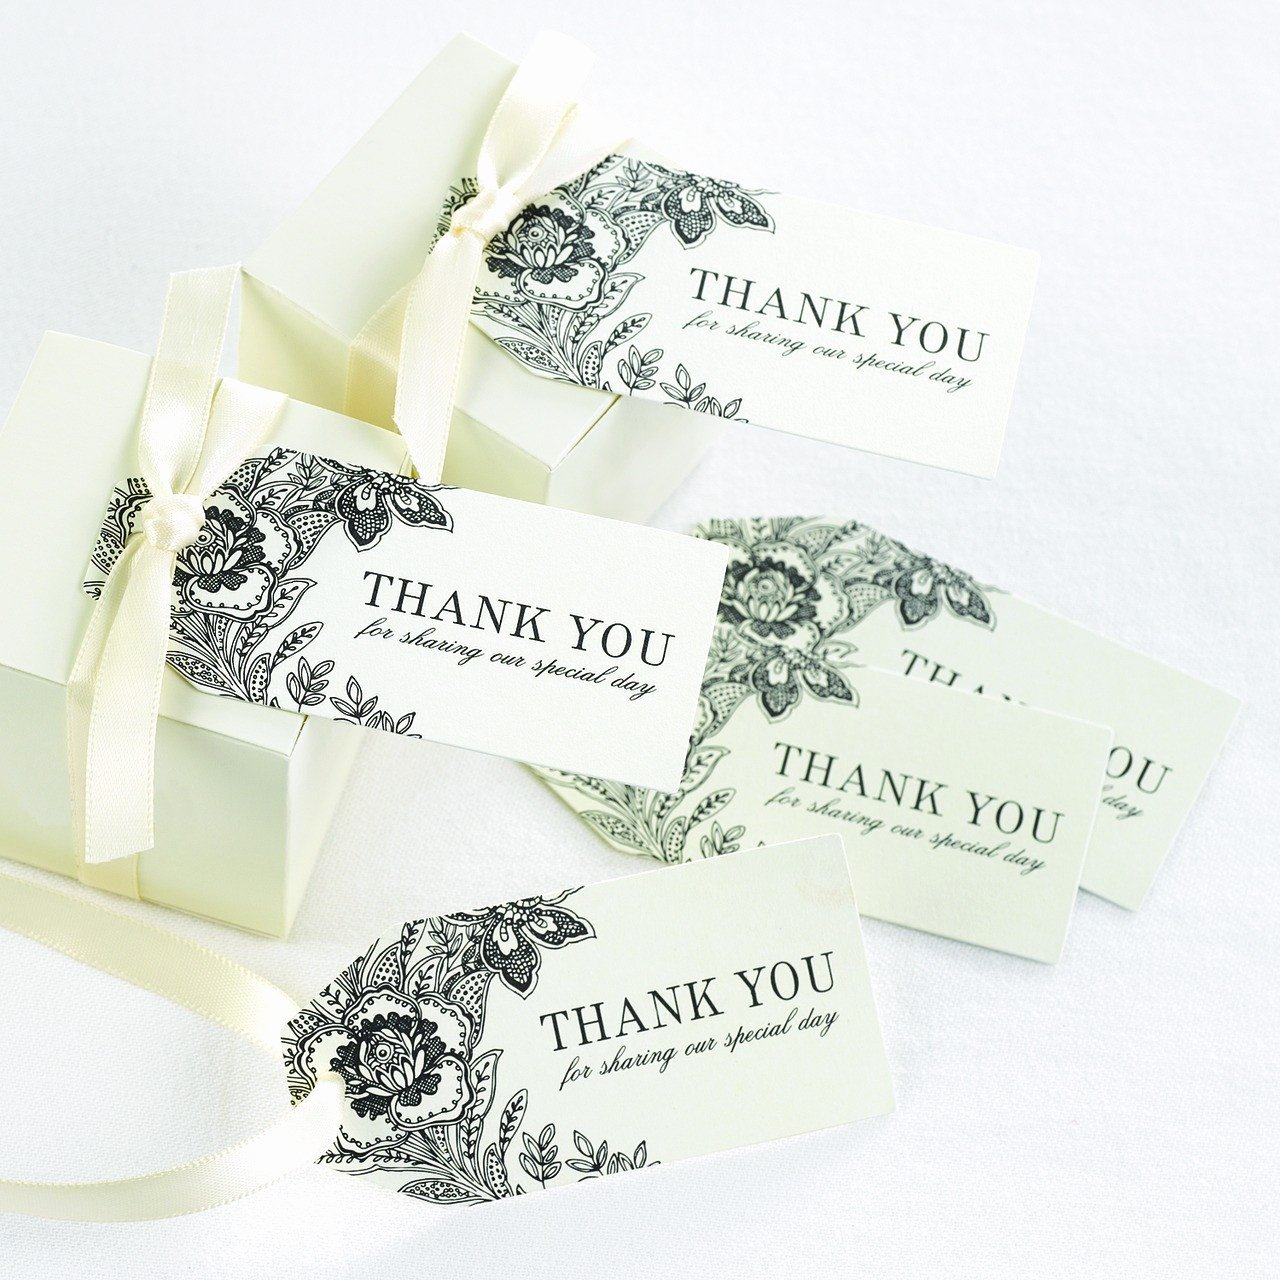 Vintage Thank You Cards Best Of Vintage Floral Thank You Card Pack Of 25 – Candy Cake Weddings